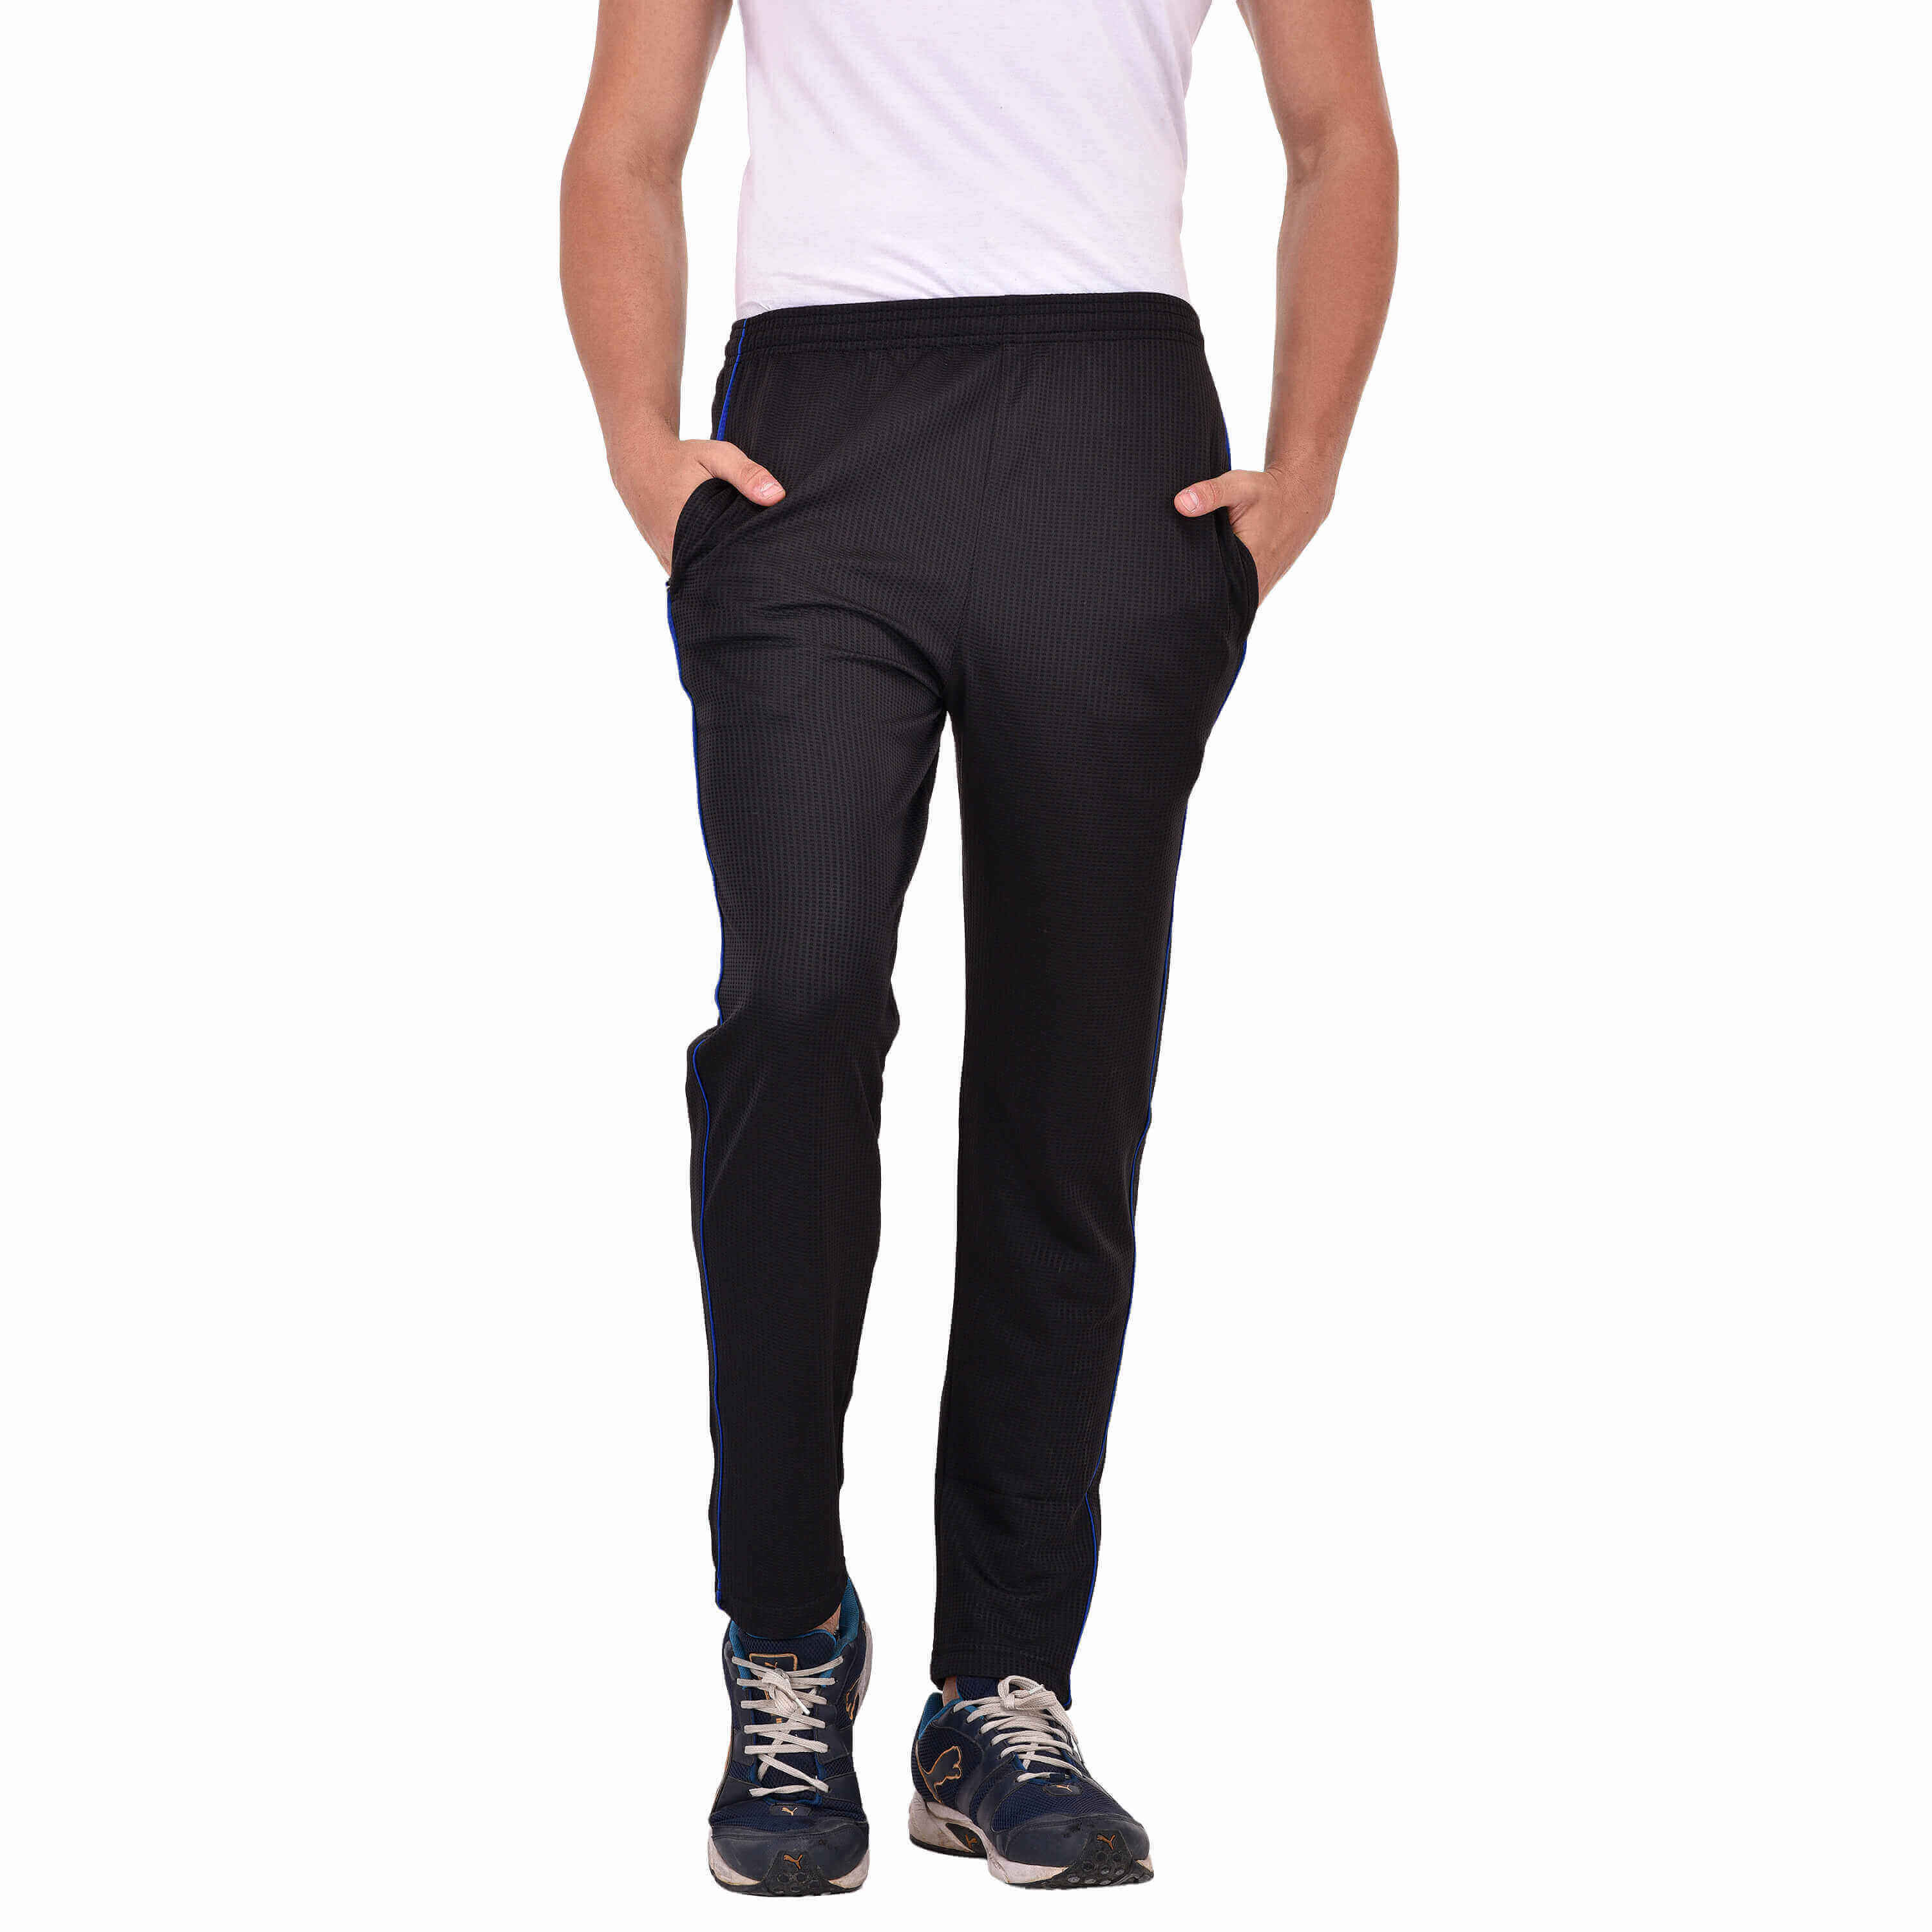 Mens Tracksuit Bottoms Manufacturers in Thiruvananthapuram